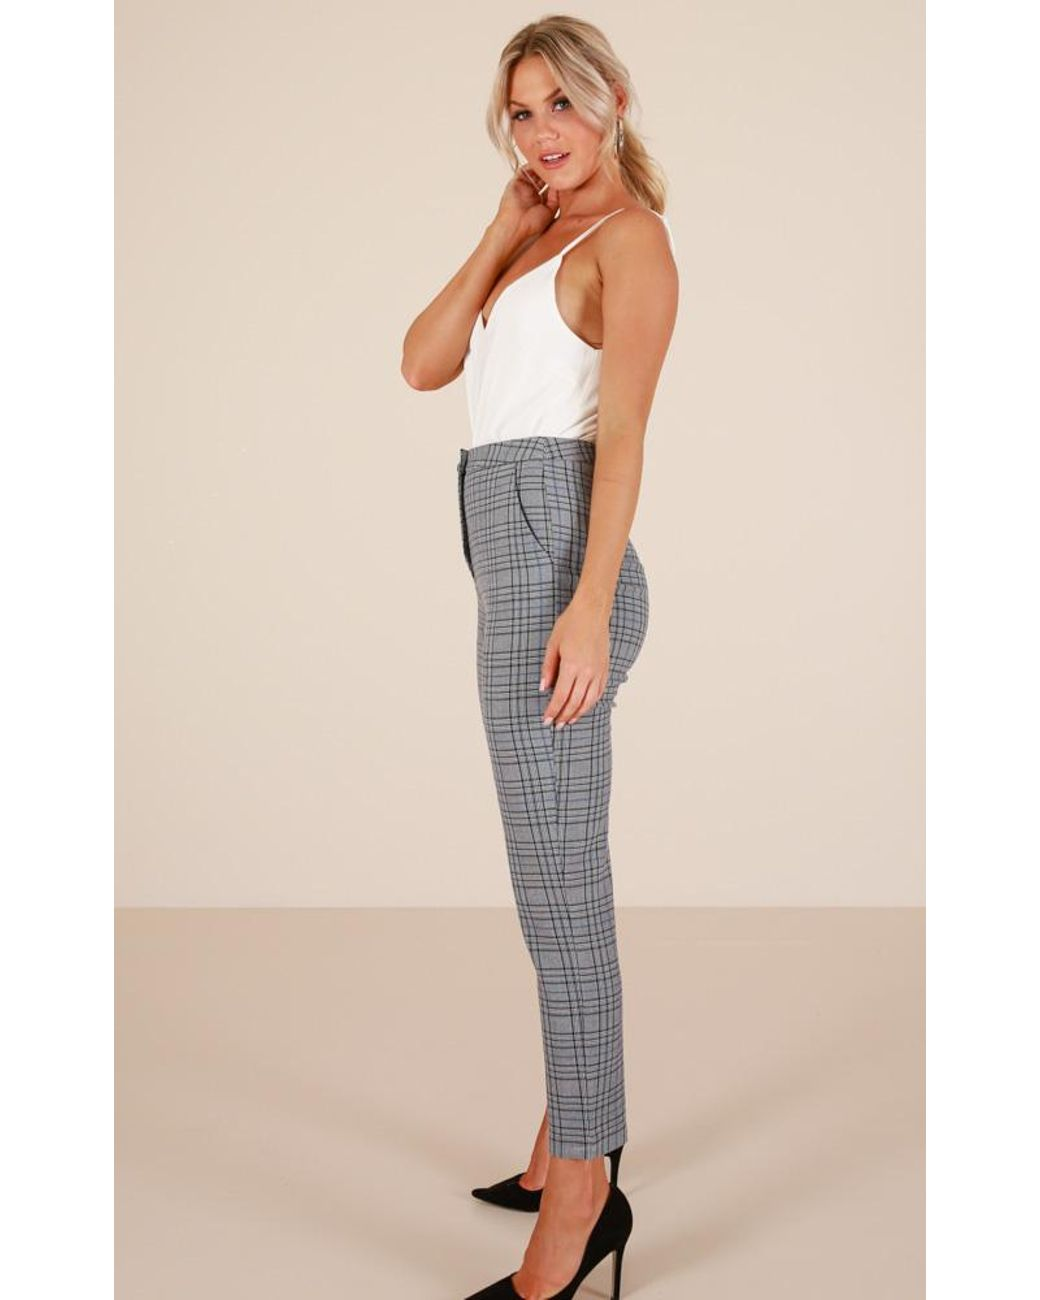 aa57107a3e22 Showpo Ahead Of The Game Pants in Gray - Lyst